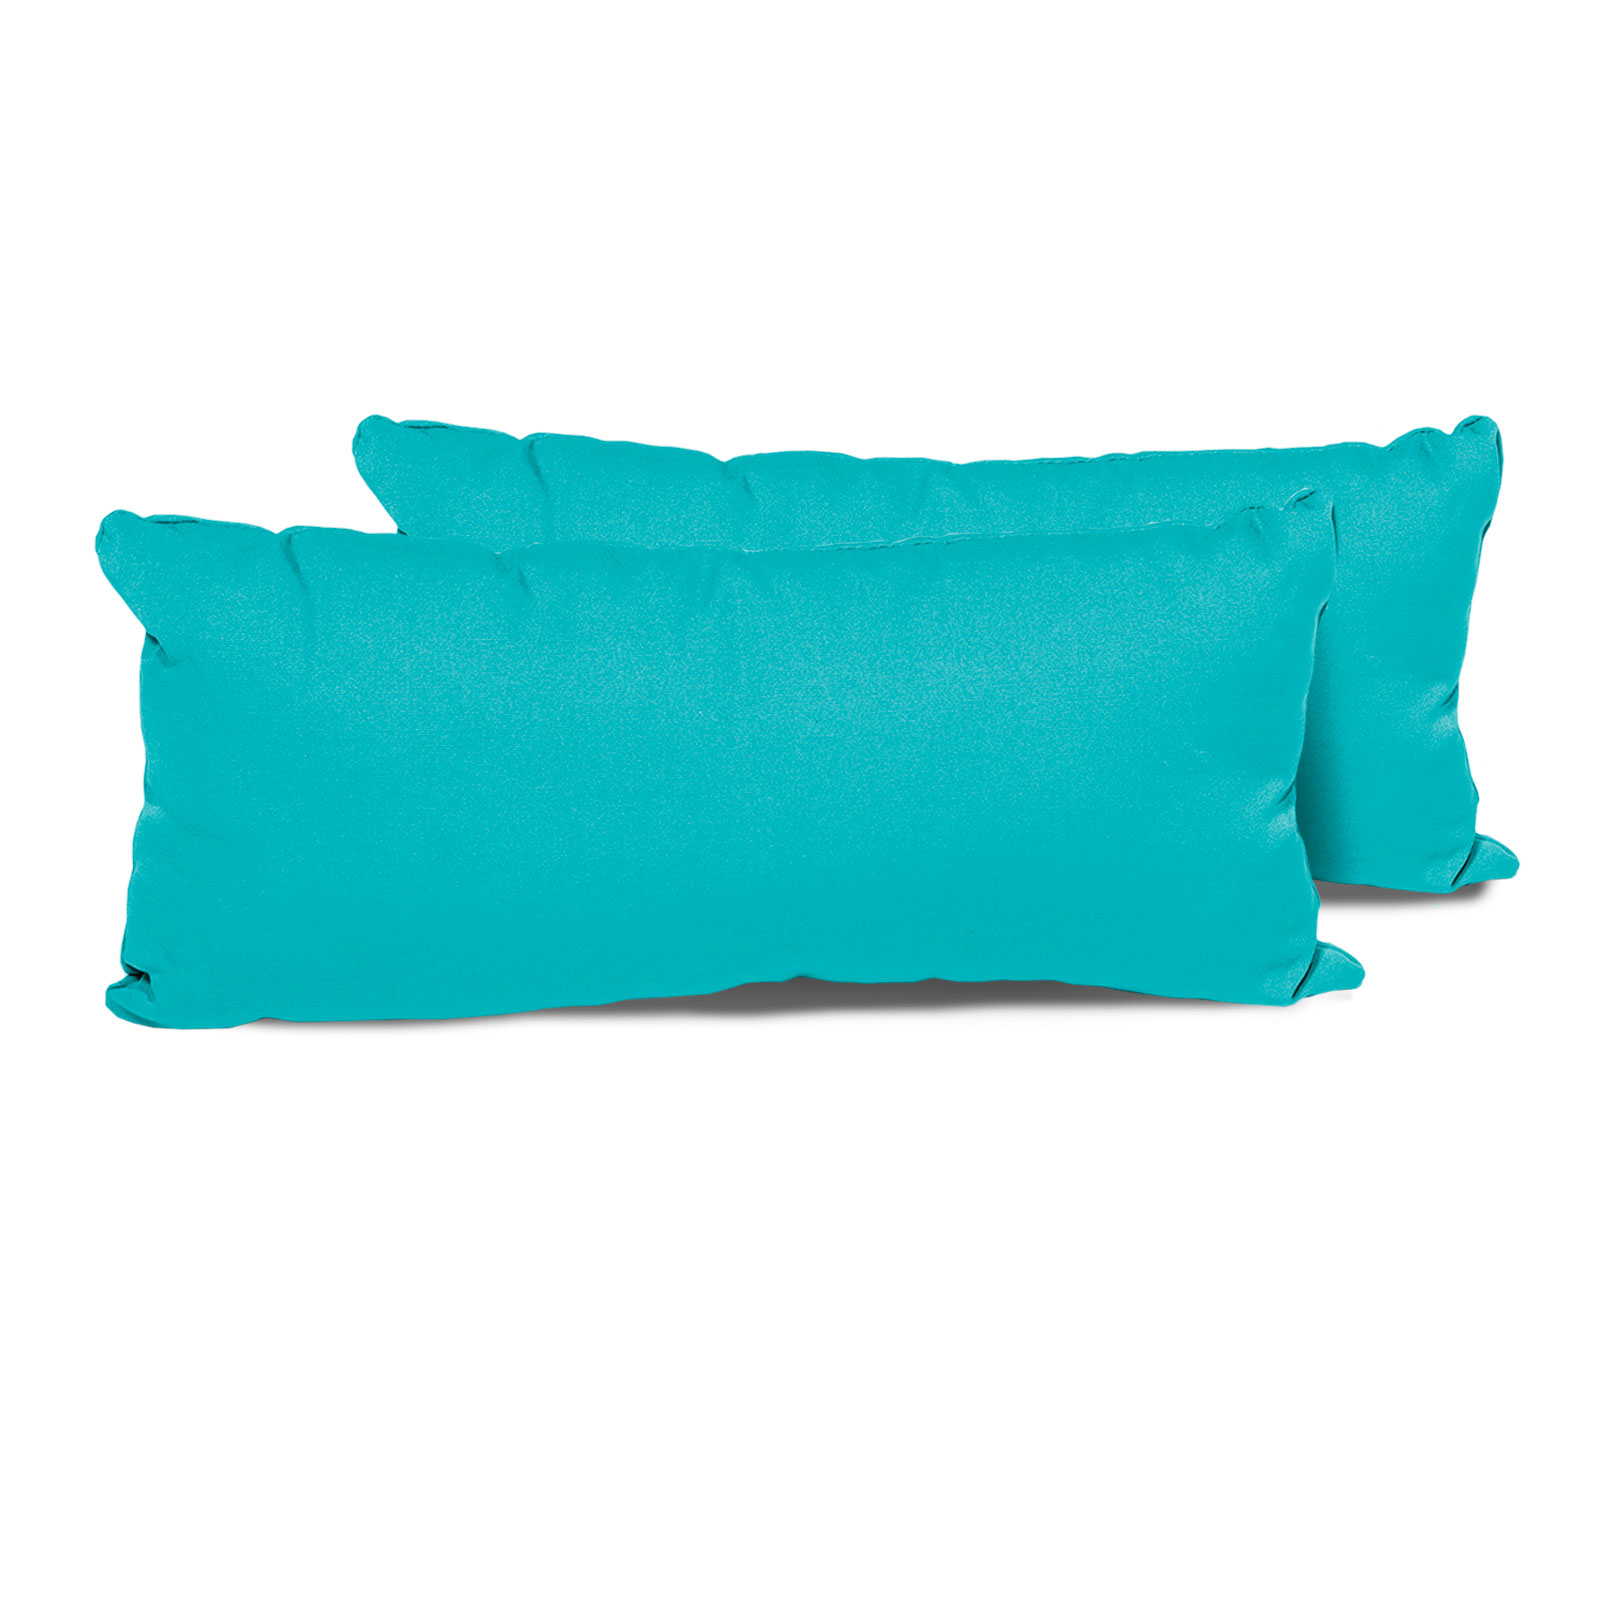 Aruba Outdoor Throw Pillows Rectangle Set of 2 by TK Classics